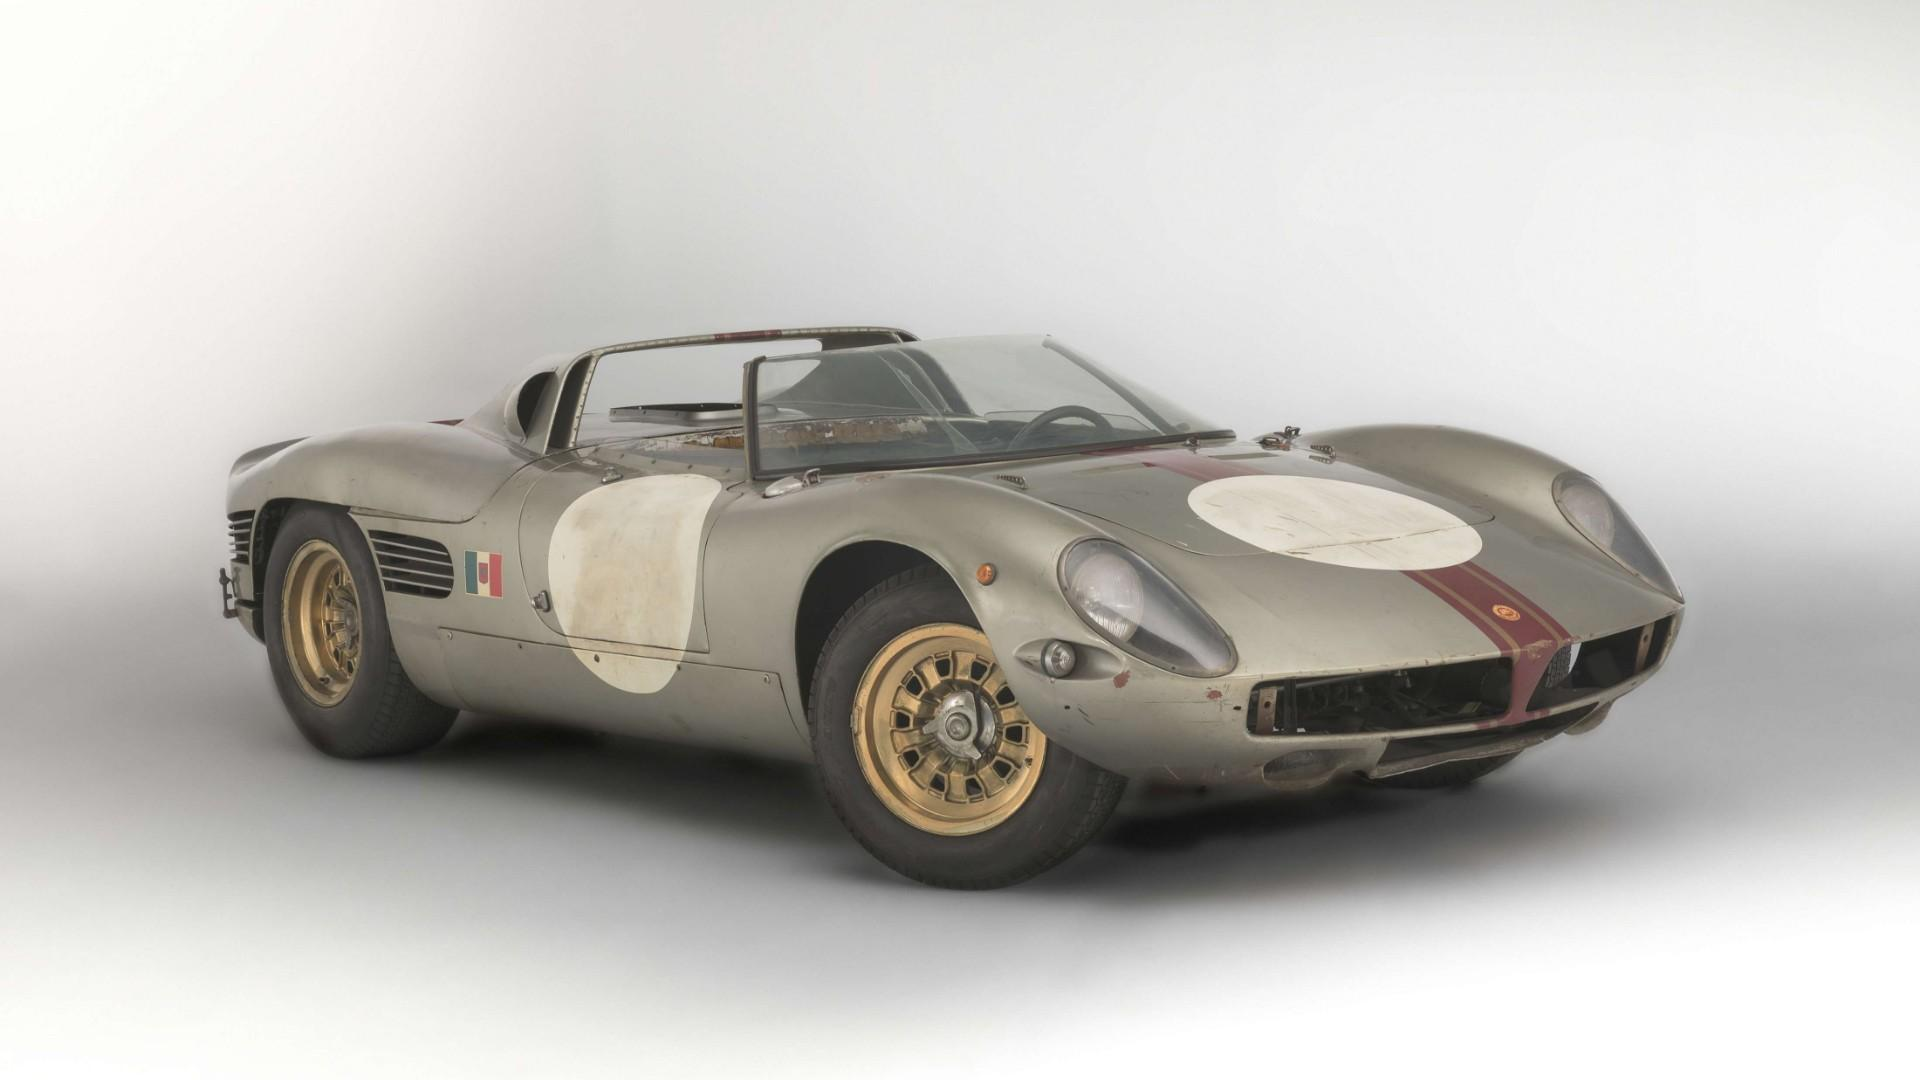 How a Ferrari war created Serenissima's Le Mans Spyder